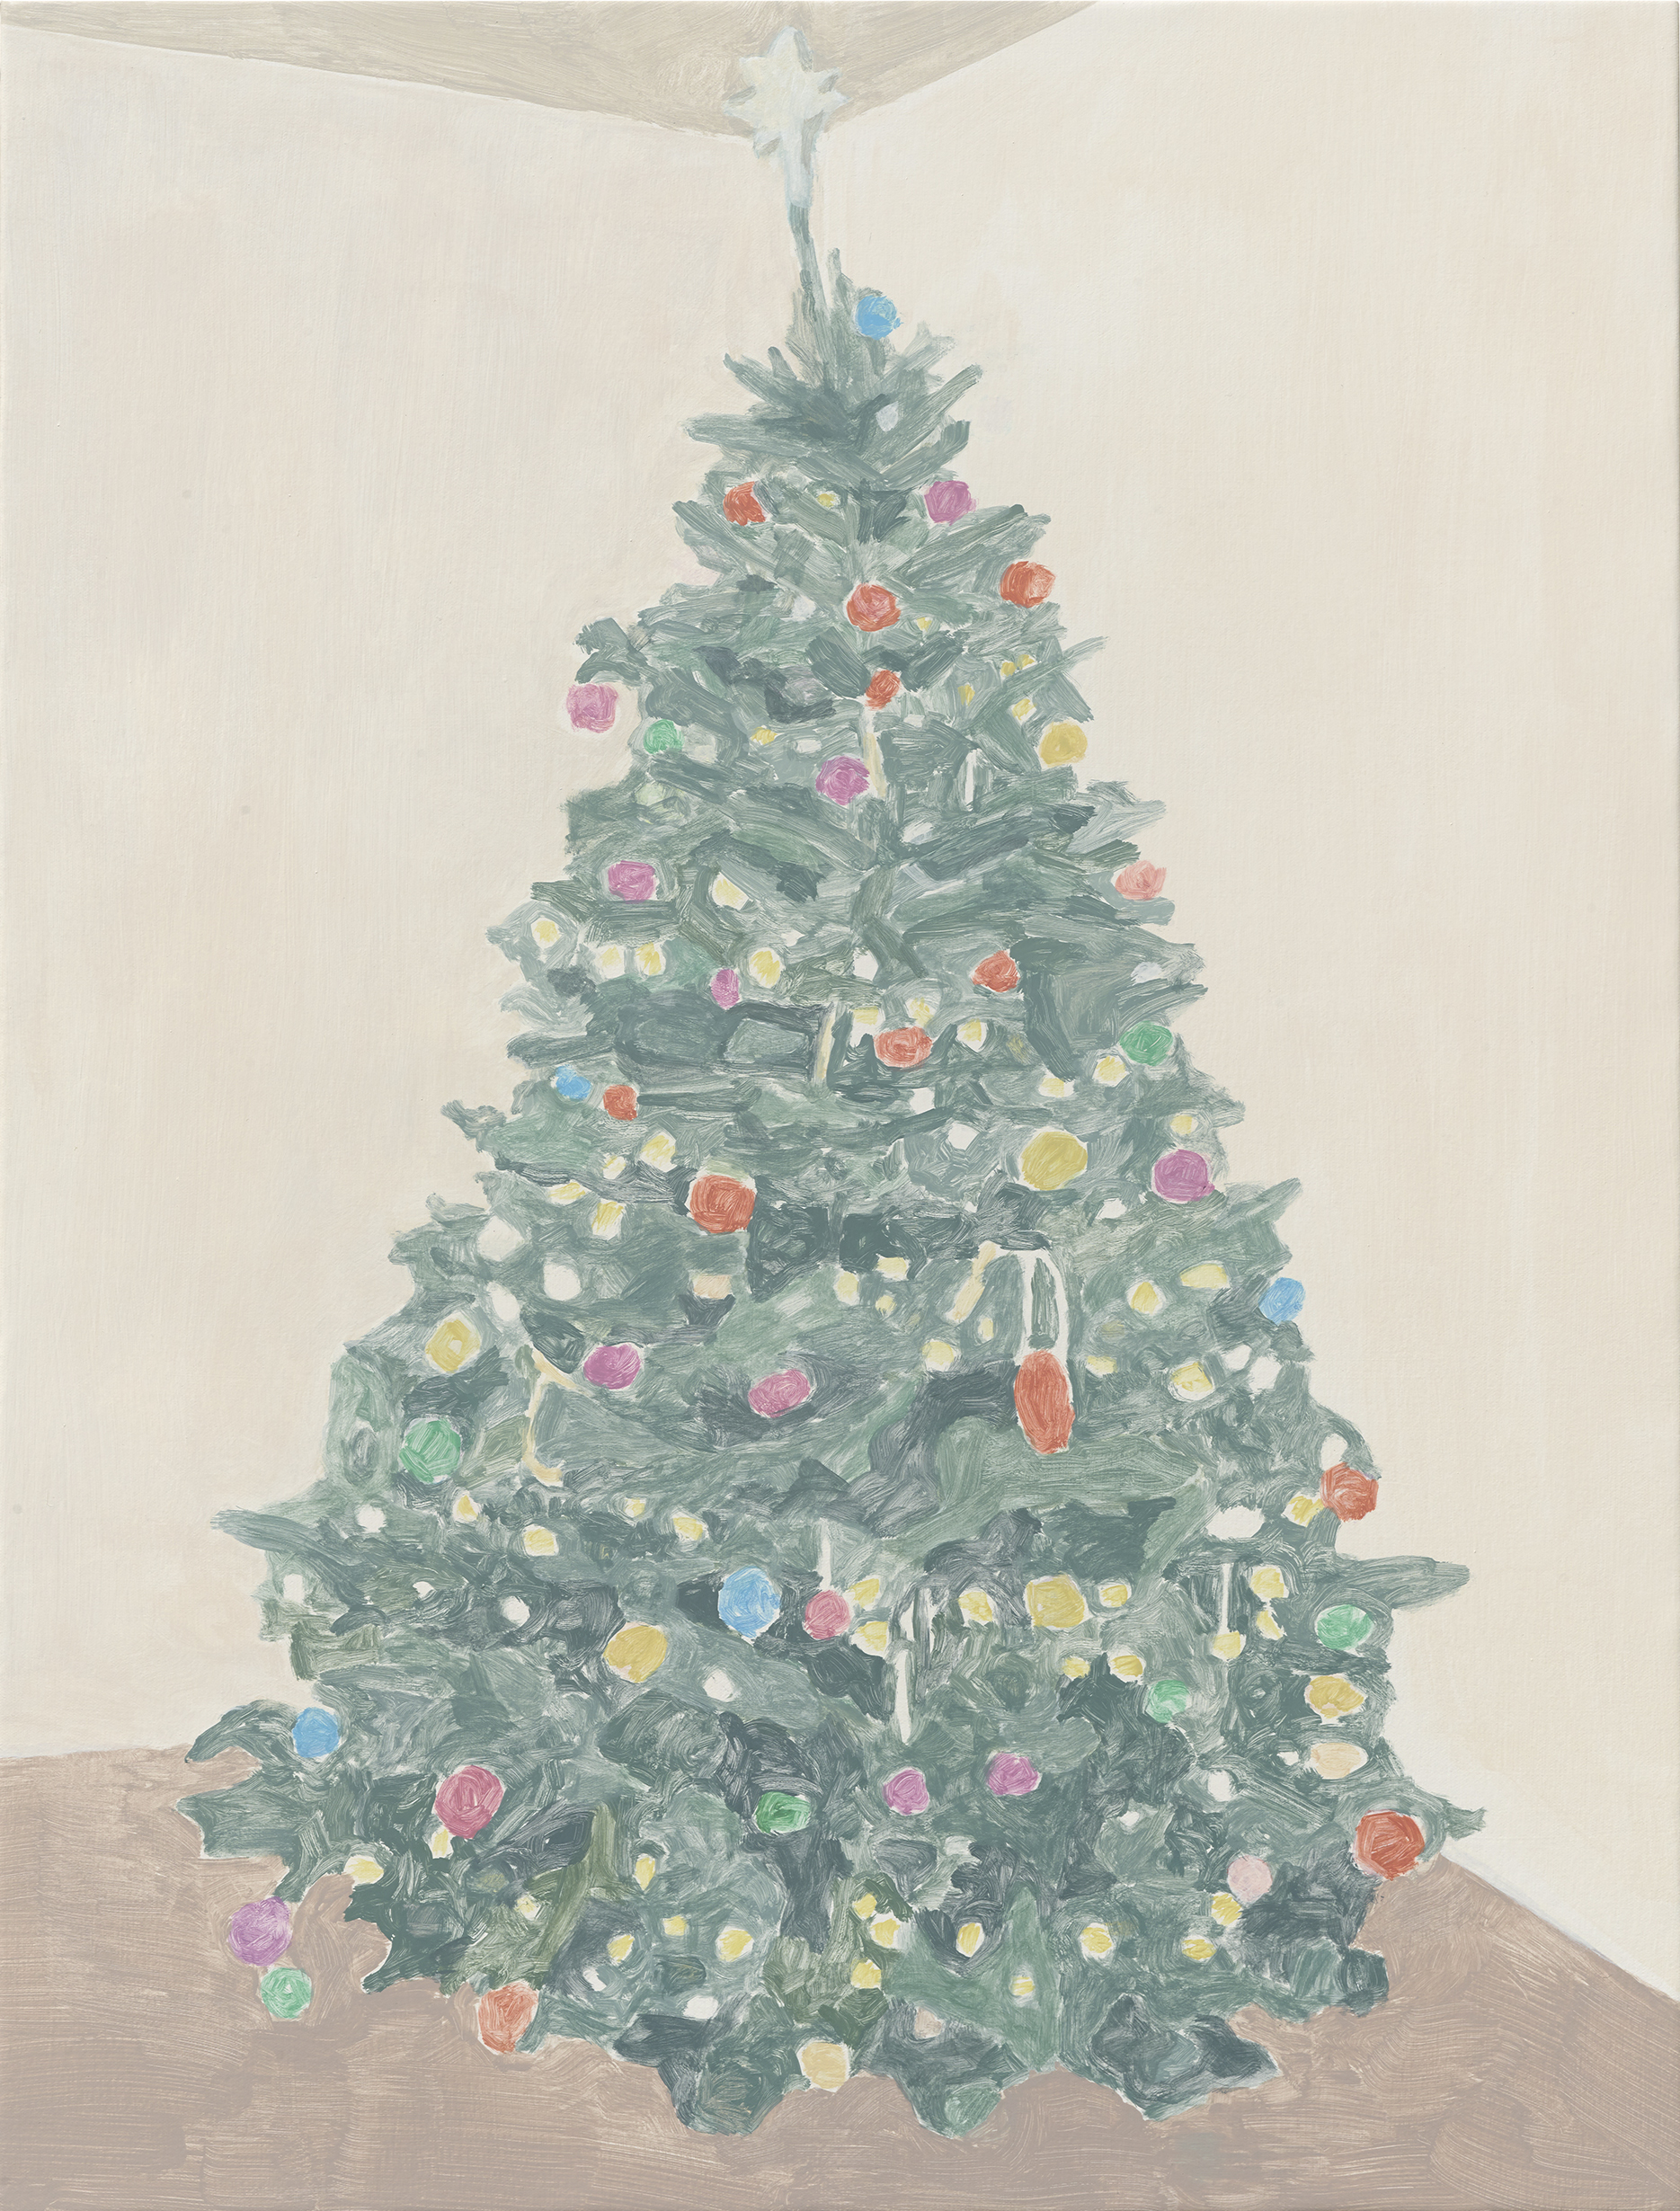 Francesca Fuchs, Xmas Tree (Baubles and Star), 2015